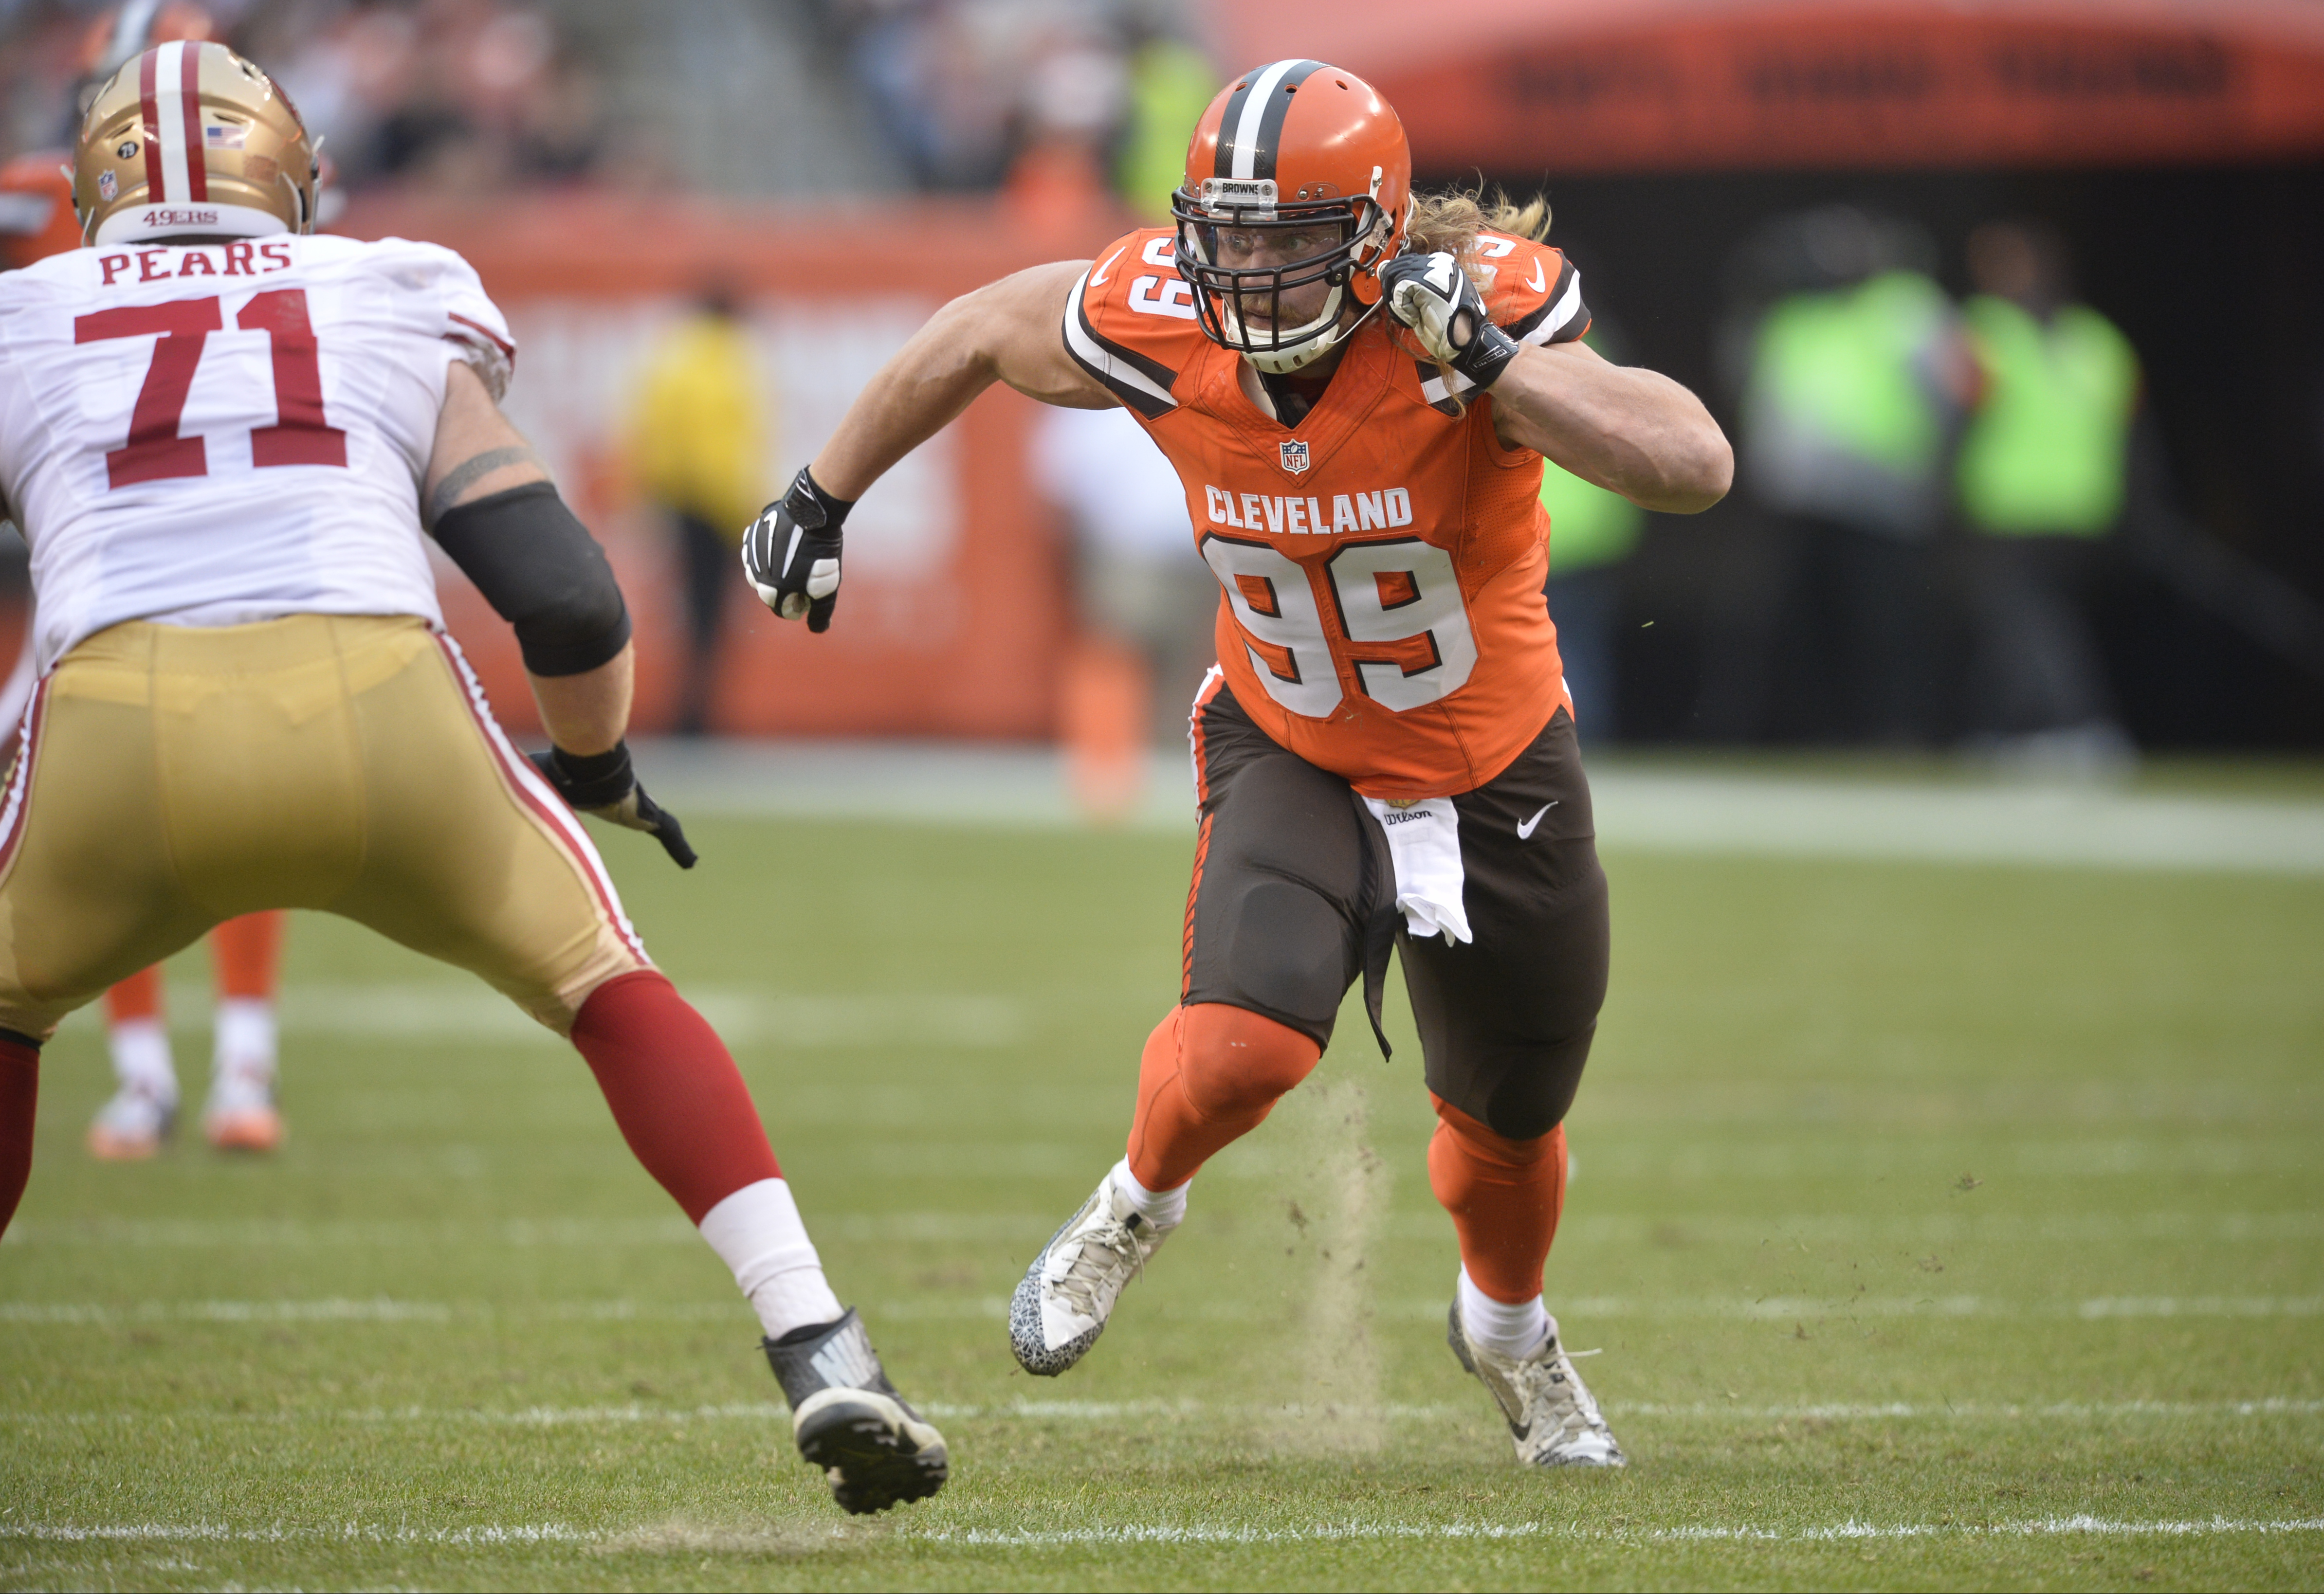 FILE - In this Dec. 13, 2015, file photo, Cleveland Browns outside linebacker Paul Kruger (99) rushes the passer against the San Francisco 49ers during an NFL football game, in Cleveland. The Browns have released linebacker Paul Kruger, a startling move i